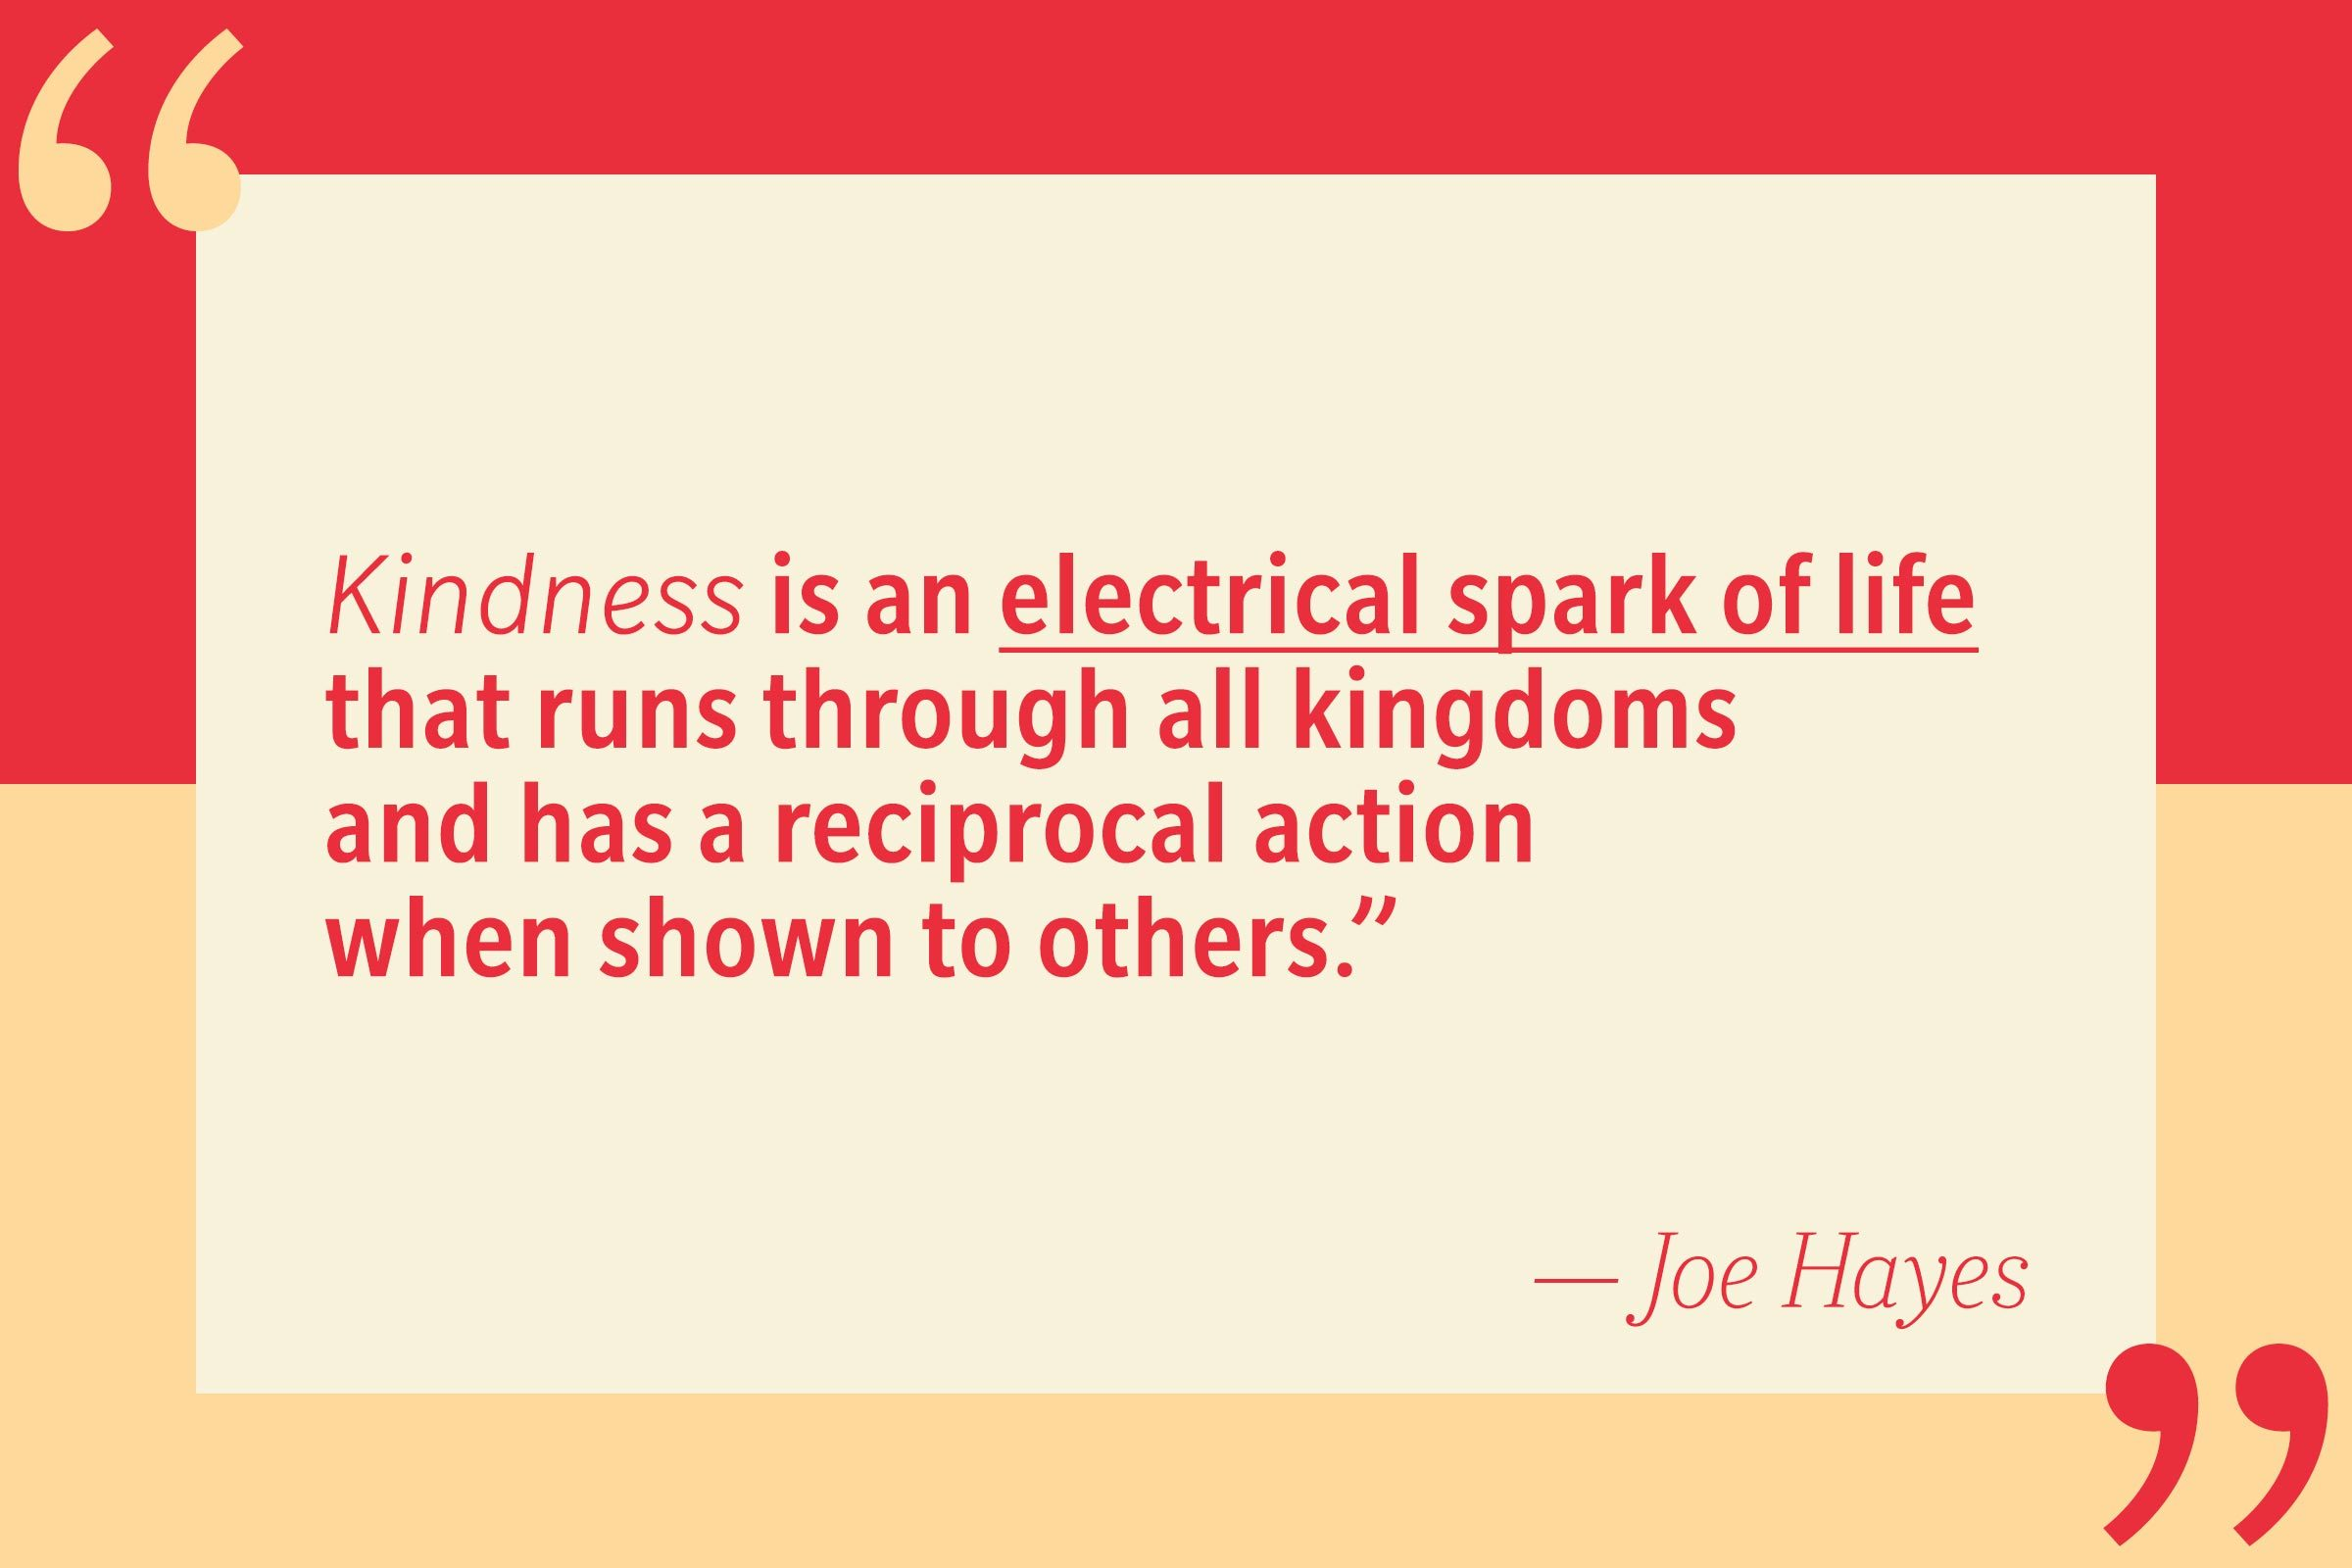 Kindness is an electrical spark of life that runs through all kingdoms and has a reciprocal action when shown to others. — Joe Hayes